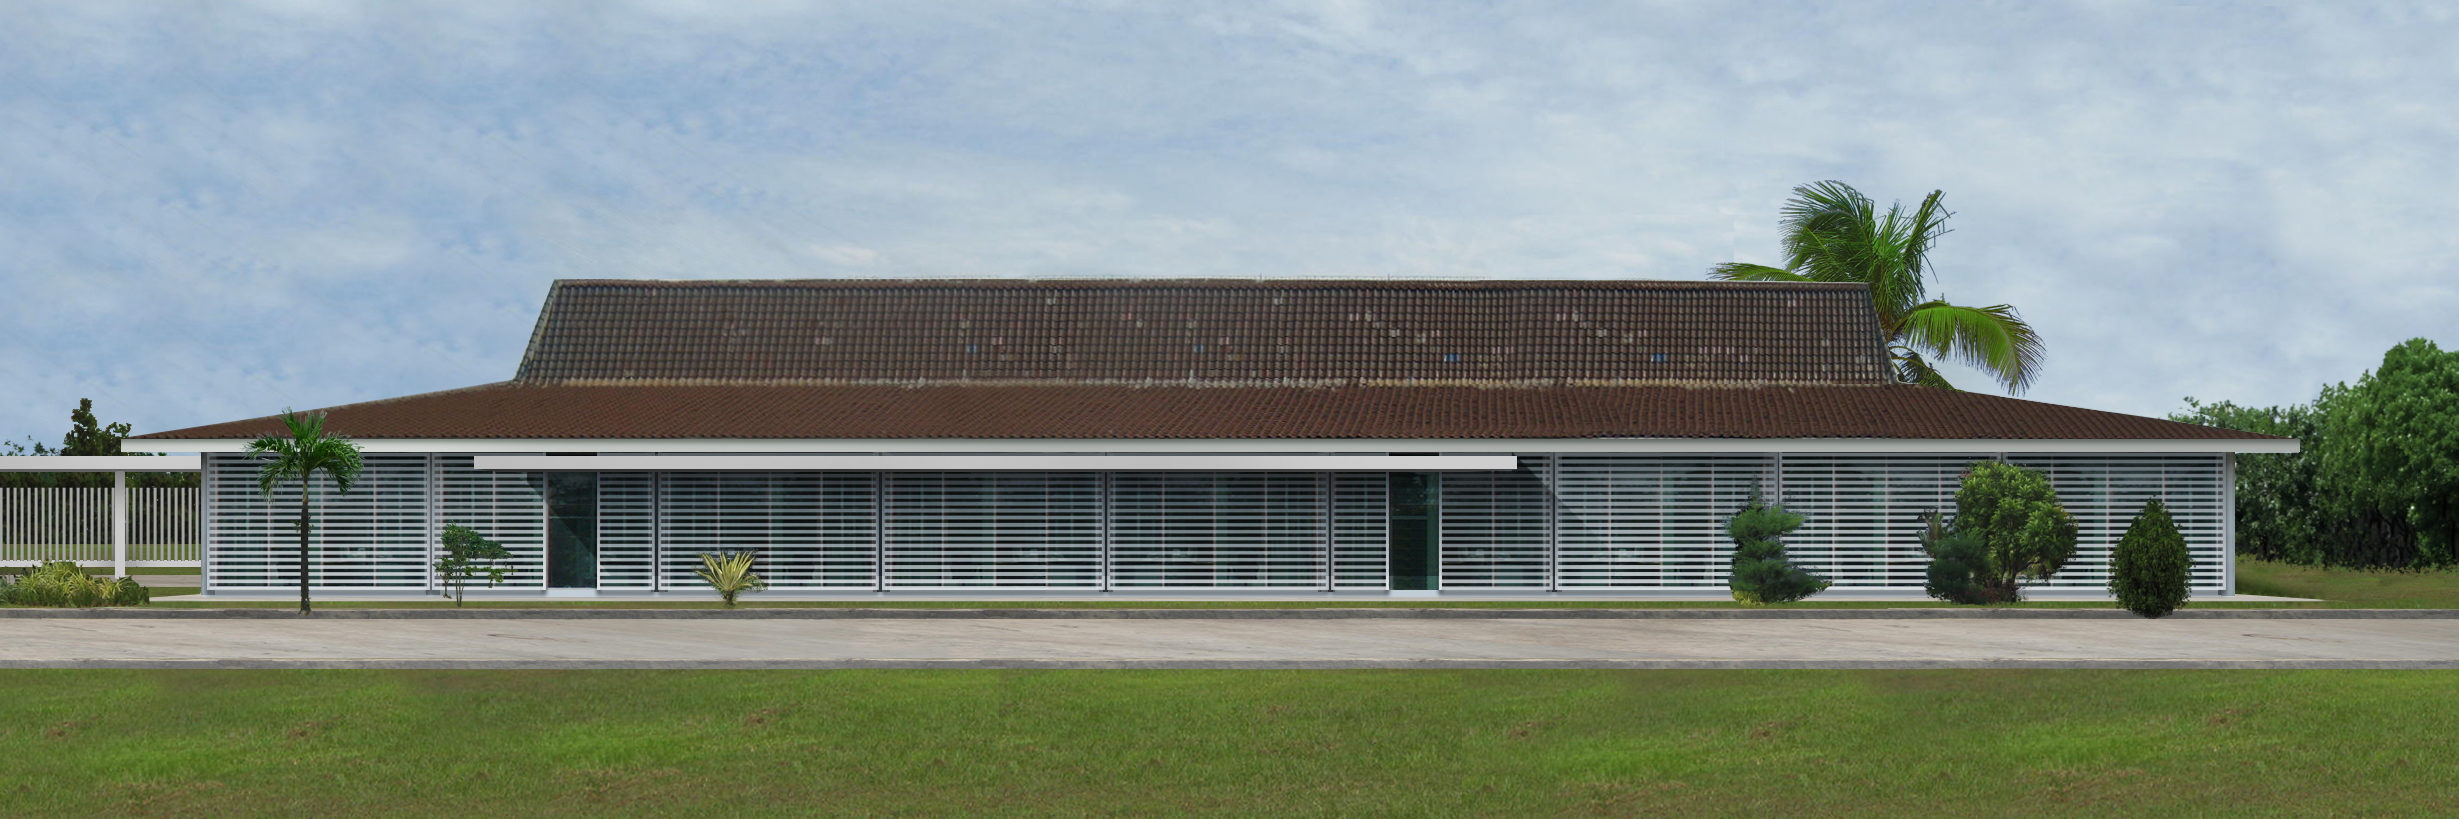 Laboratories, Cilegon, Indonesia